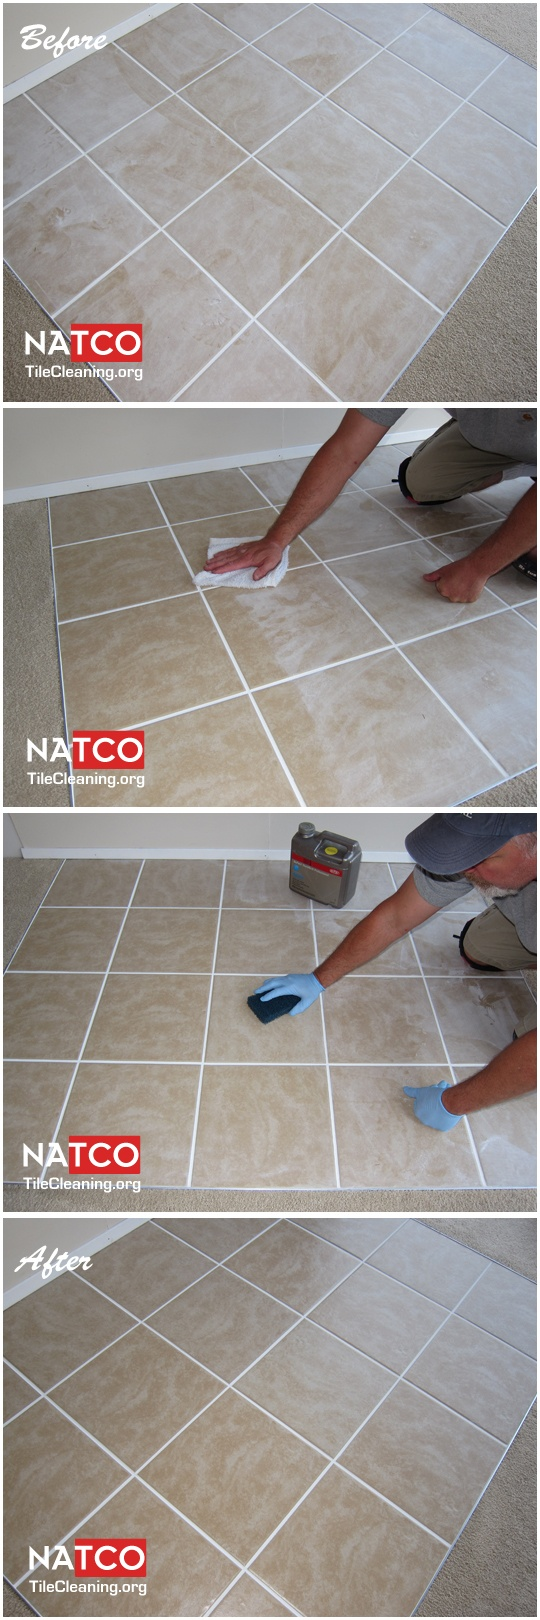 How To Remove Kitchen Tiles 25 Best Ideas About How To Remove Grout On Pinterest Diy Grout